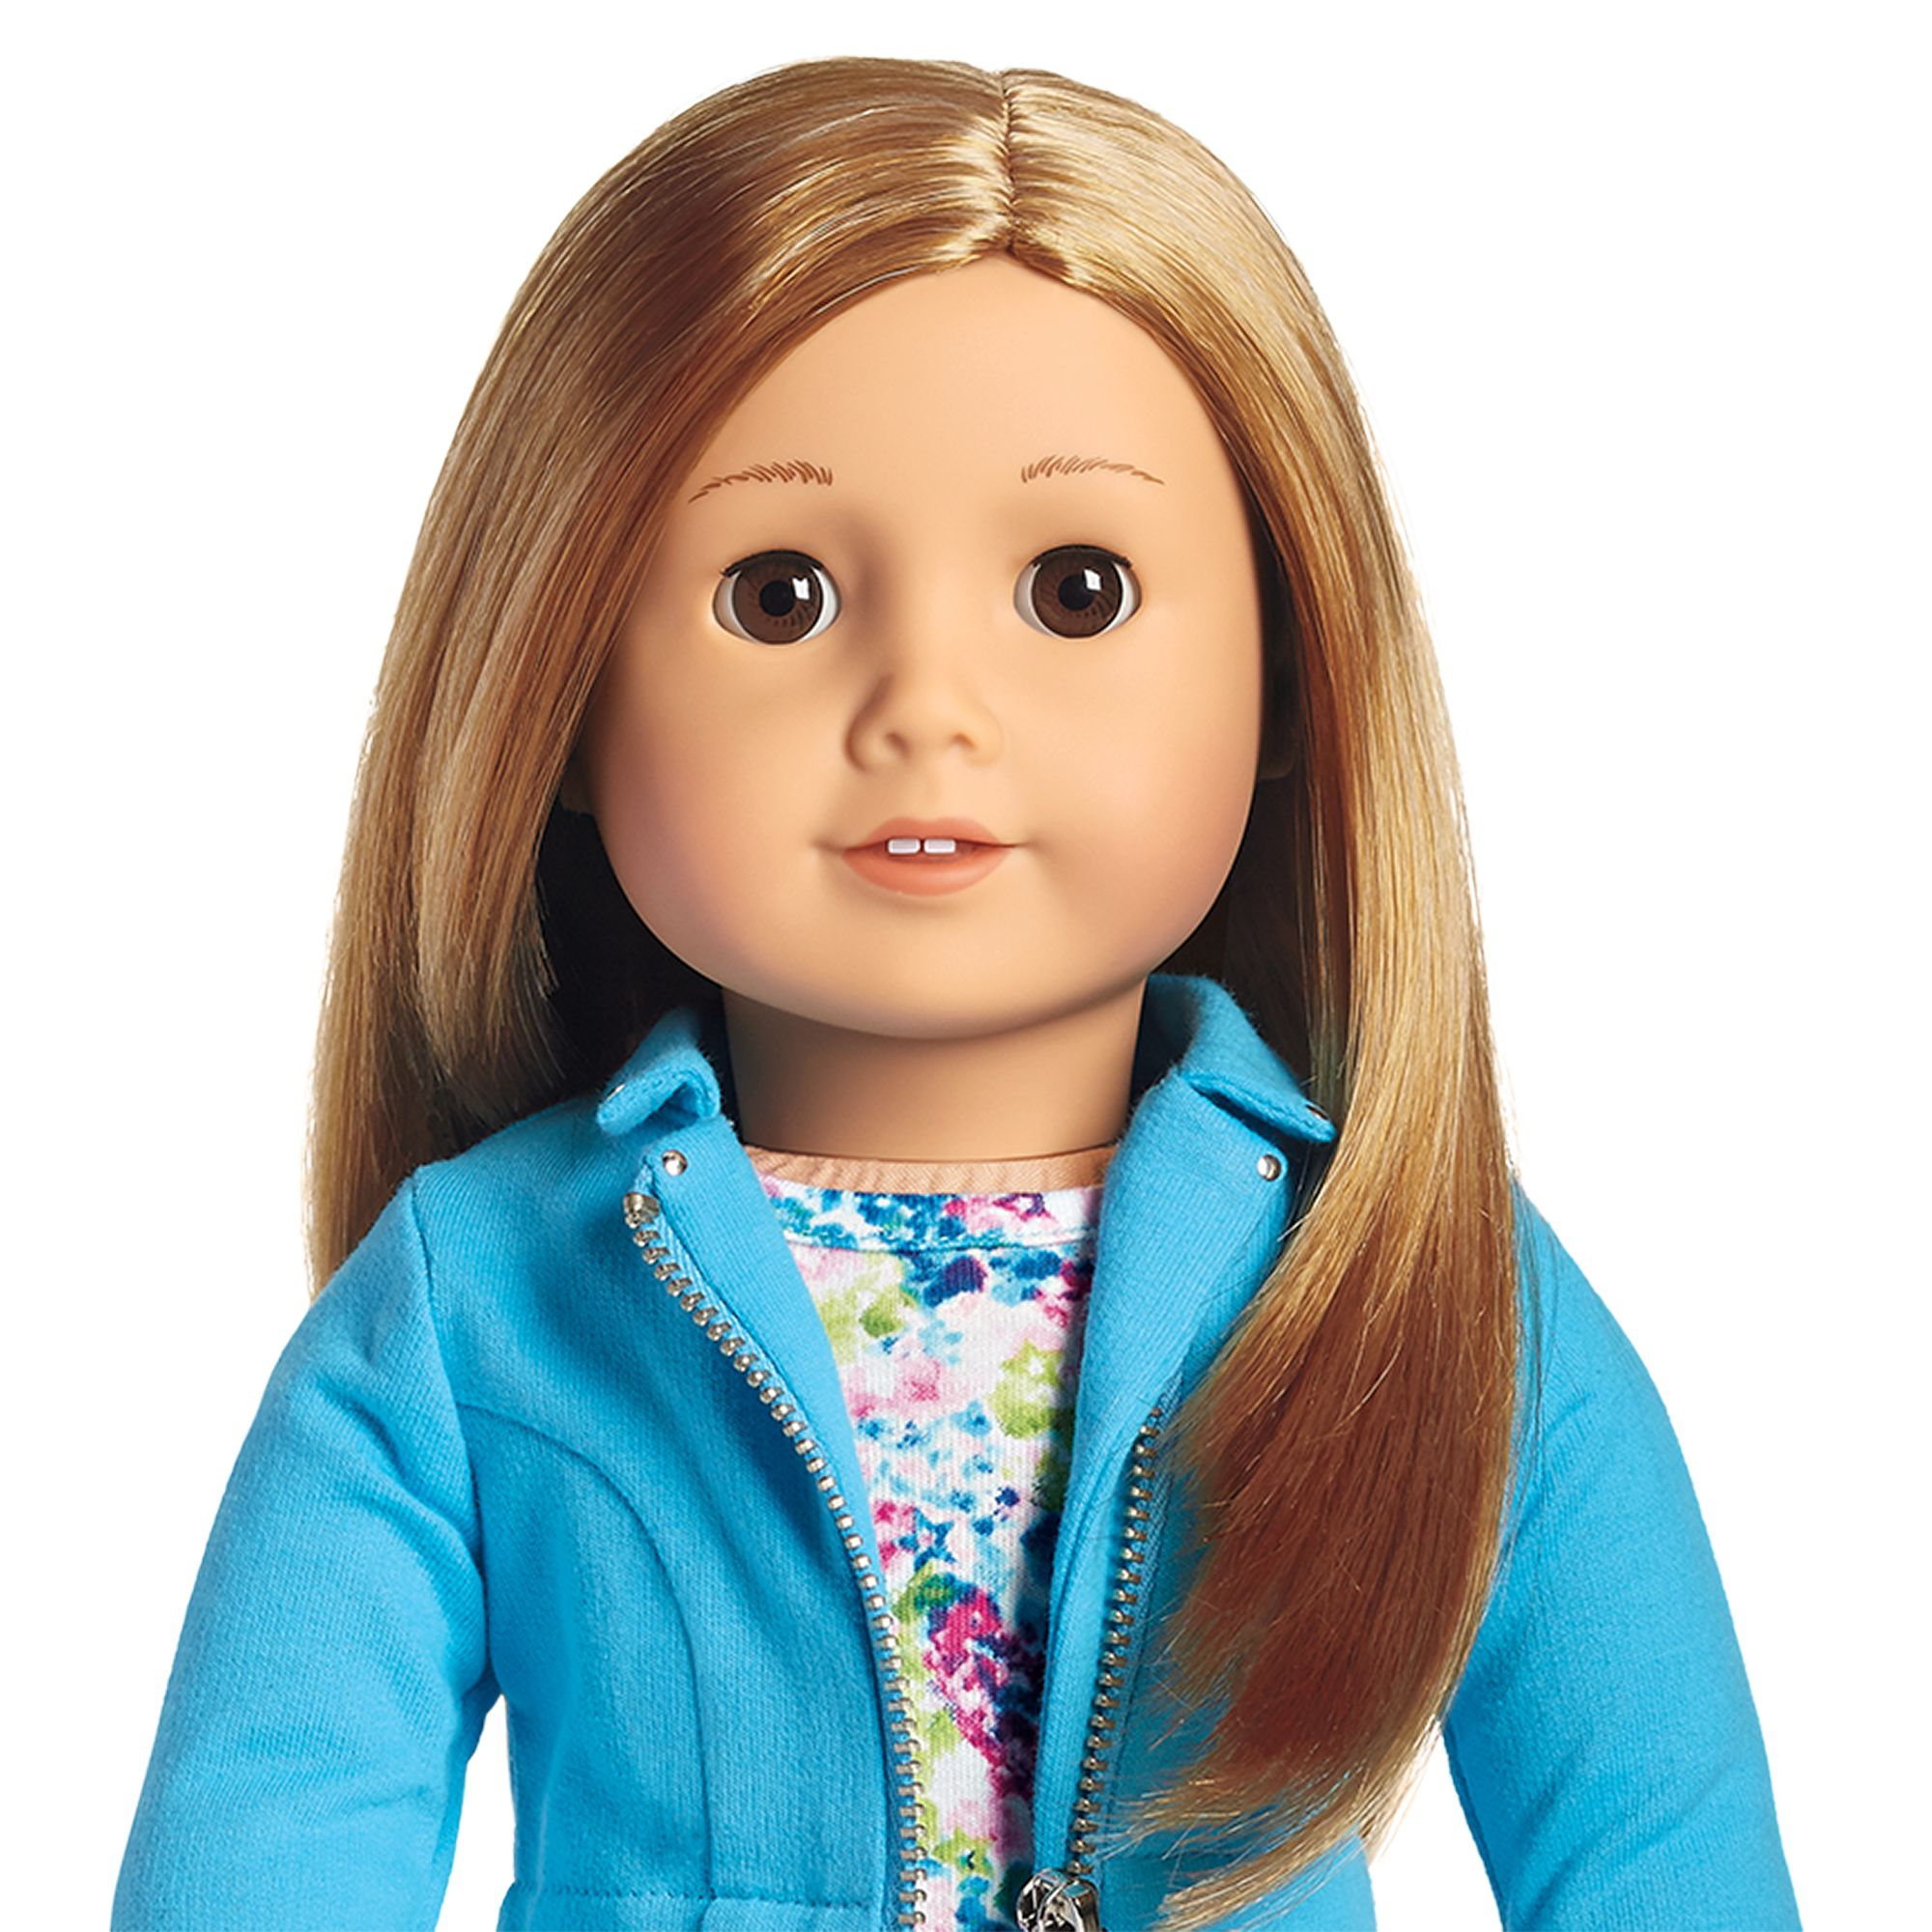 http://vignette2.wikia.nocookie.net/americangirl/images/0/0c/JLY35.jpg American Girl Doll Just Like You 39